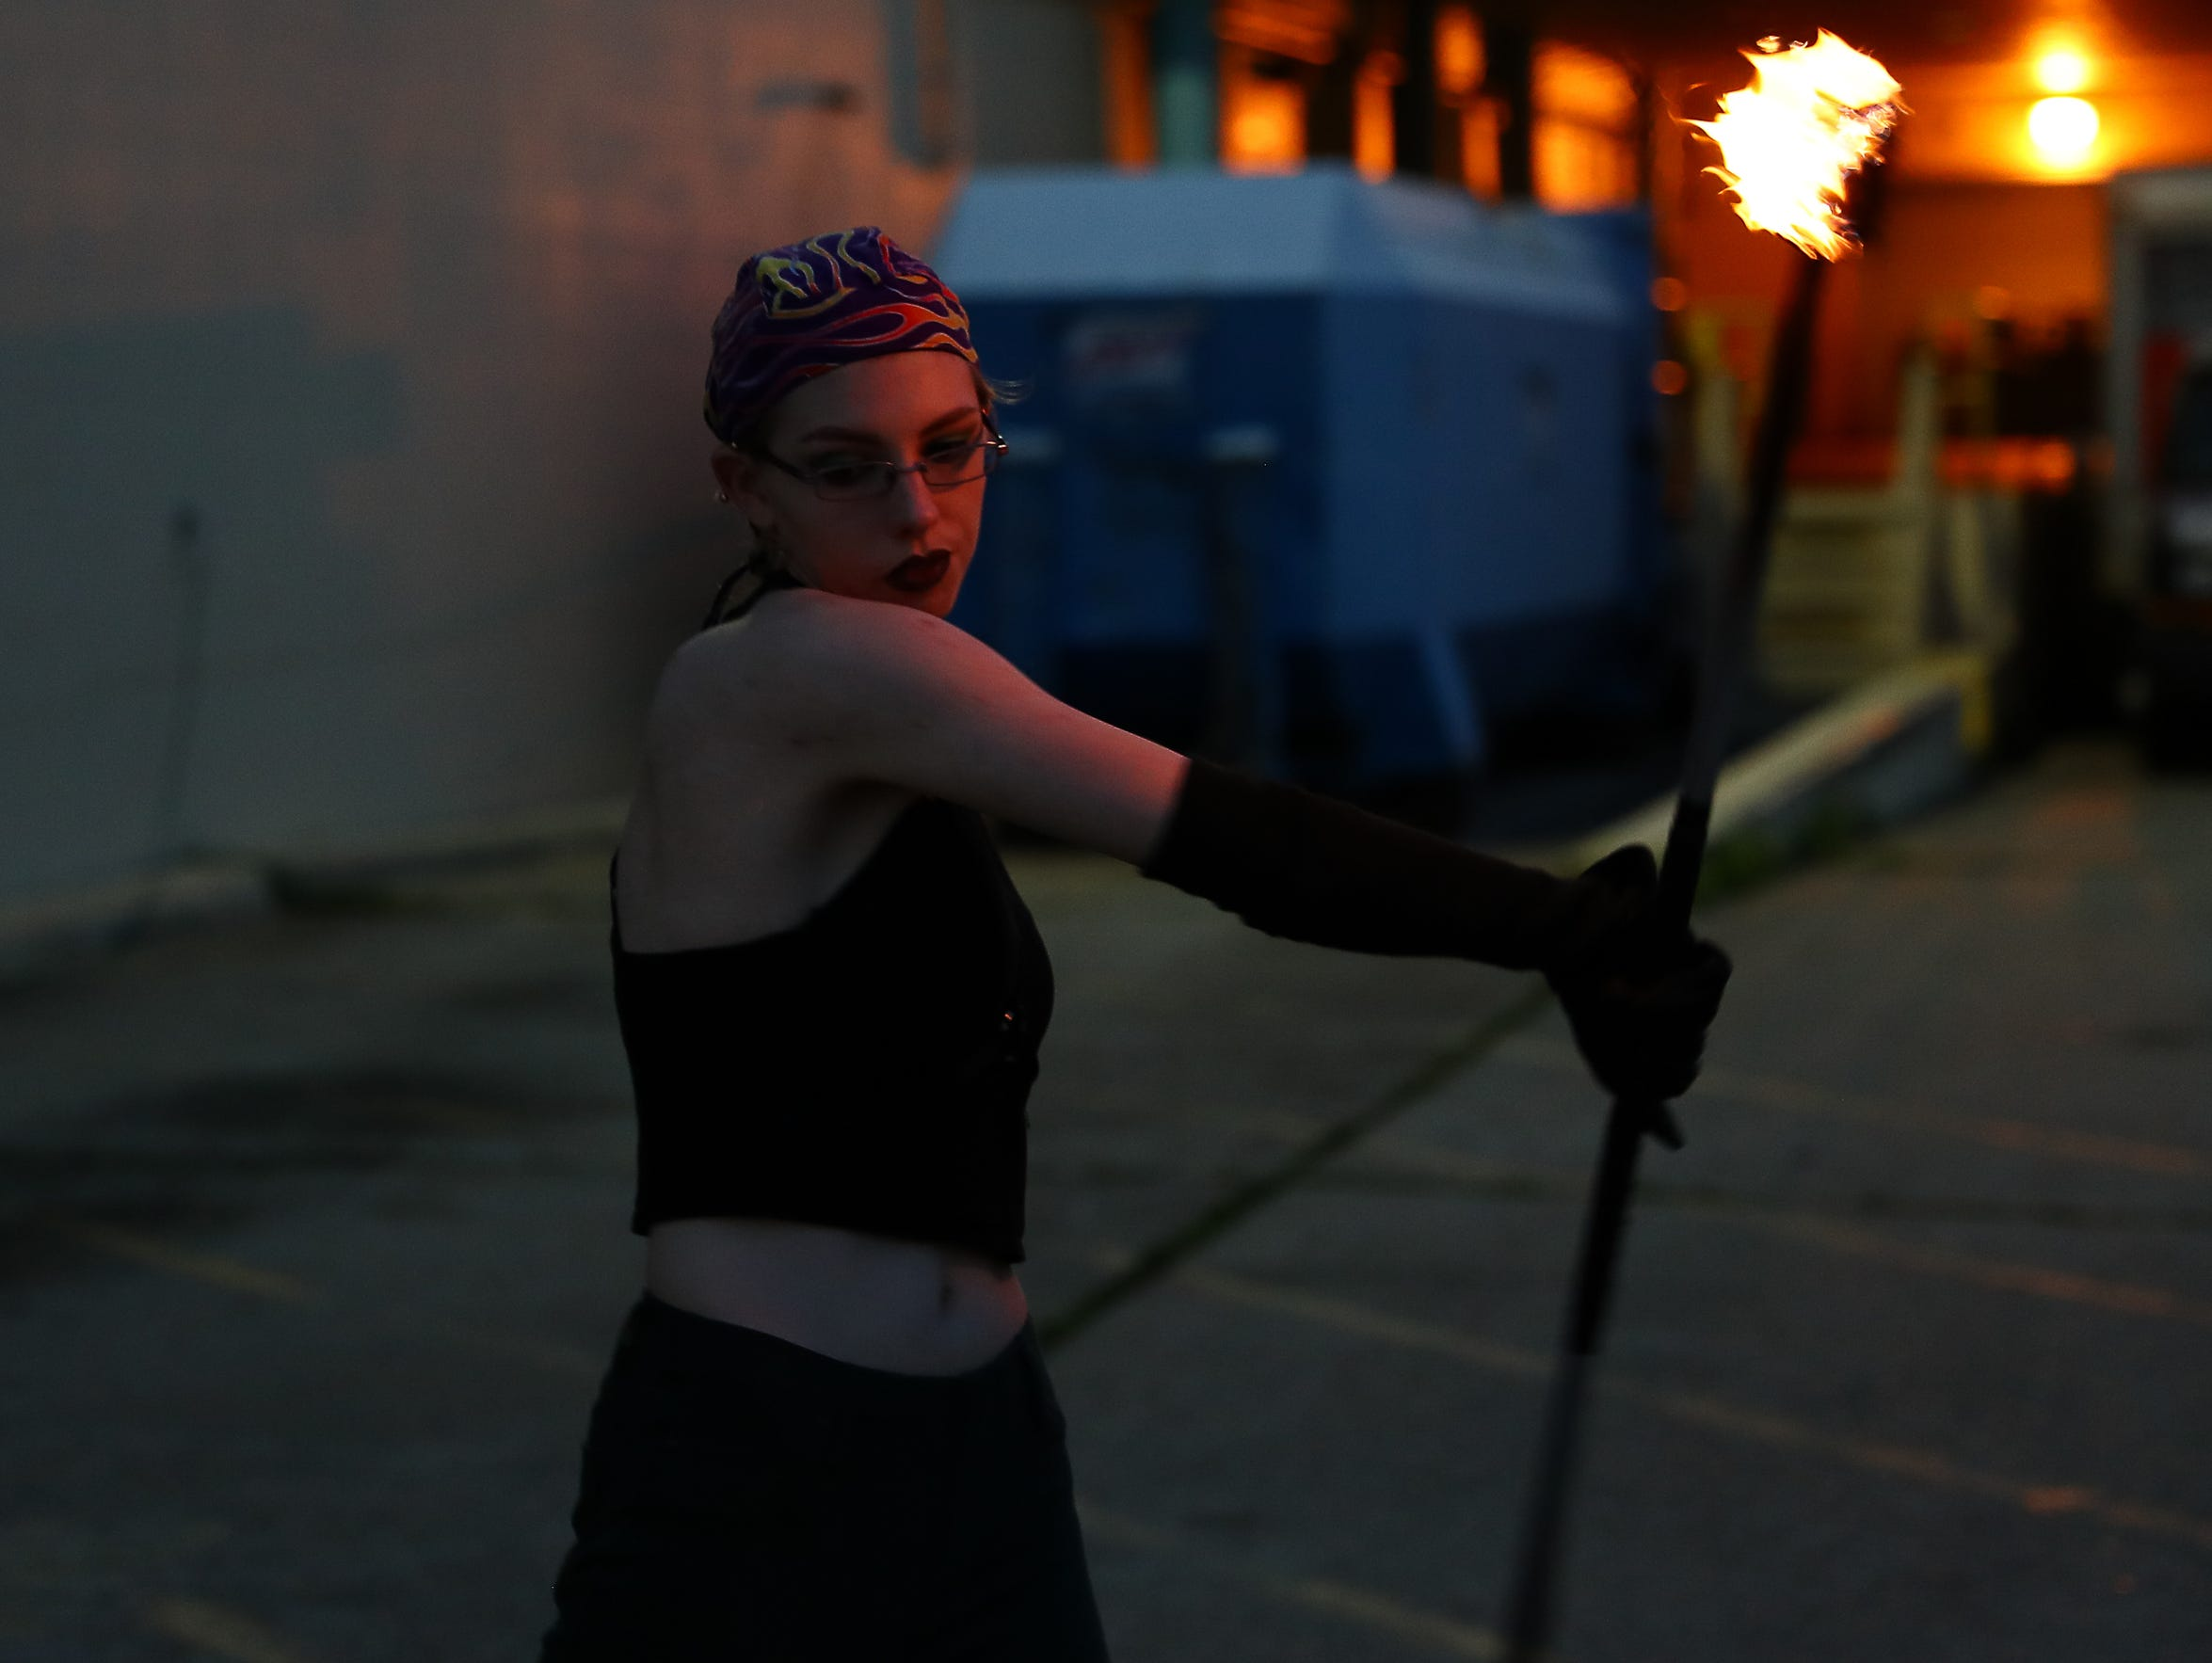 Viktoria Birr demonstrates fire spinning outside the